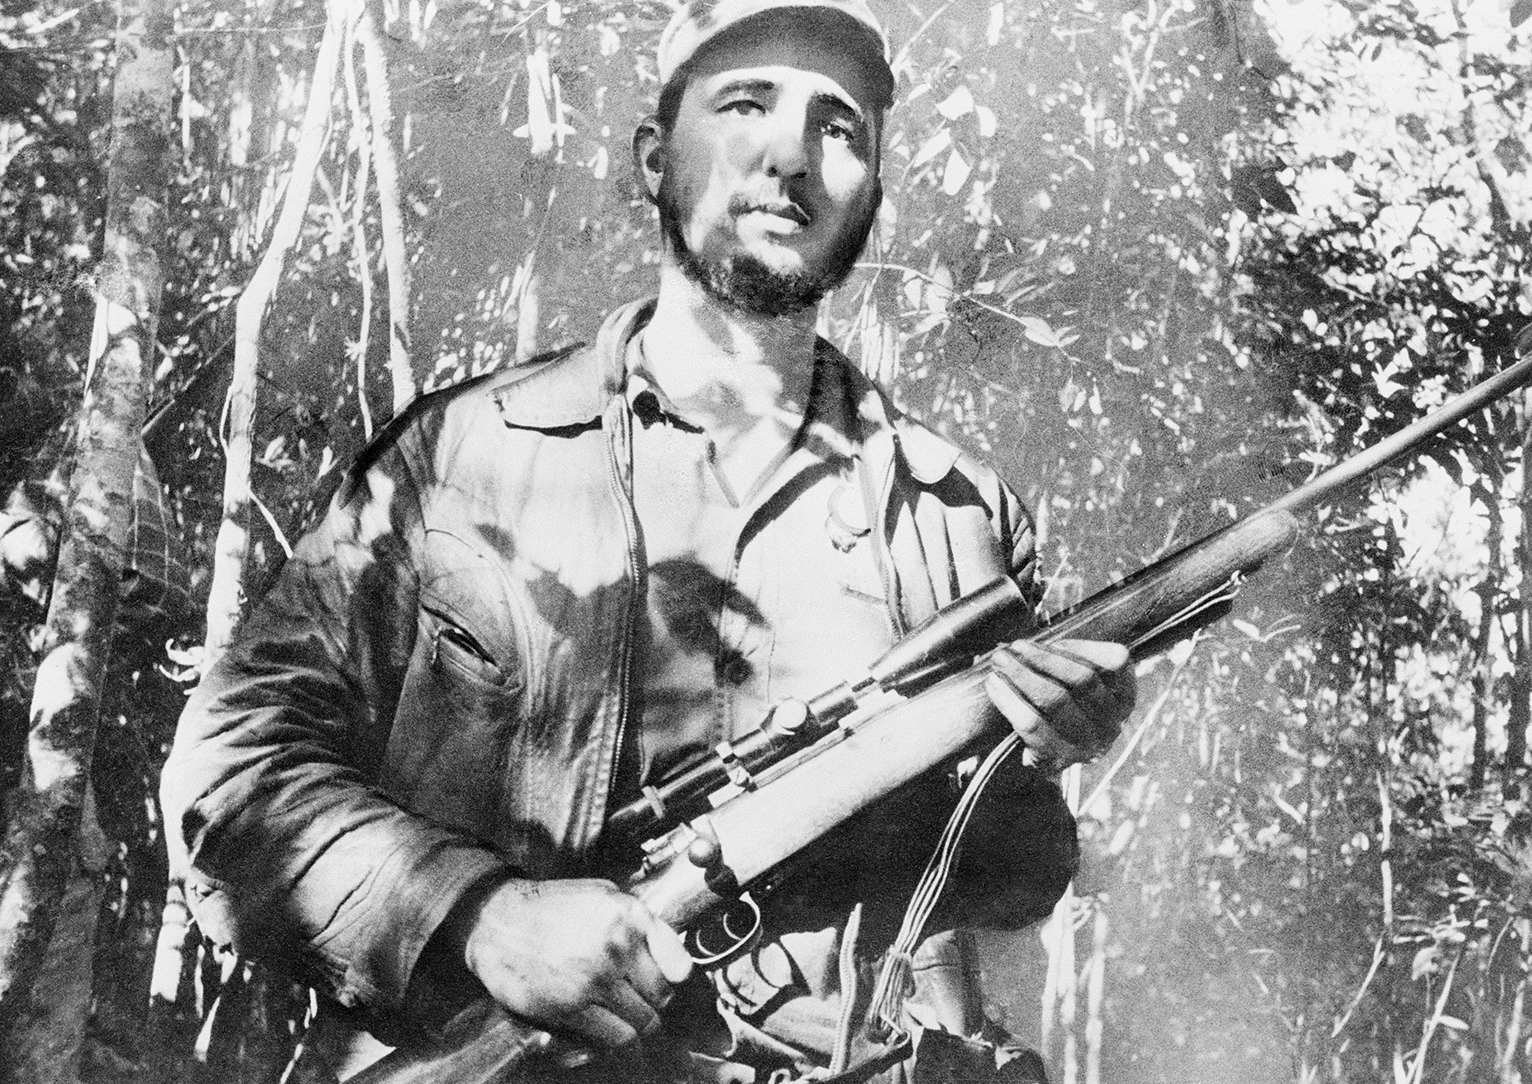 the reasons that led to the cuban revolution in the 1950s Cuban general, won the election, dictator in cuba, famous for his relationship with the us mafia, heavily opresses student protestors, overthrown as a result of the cuban revolution moncada castro lead an assault of the moncada barracks and was unsuccessful.